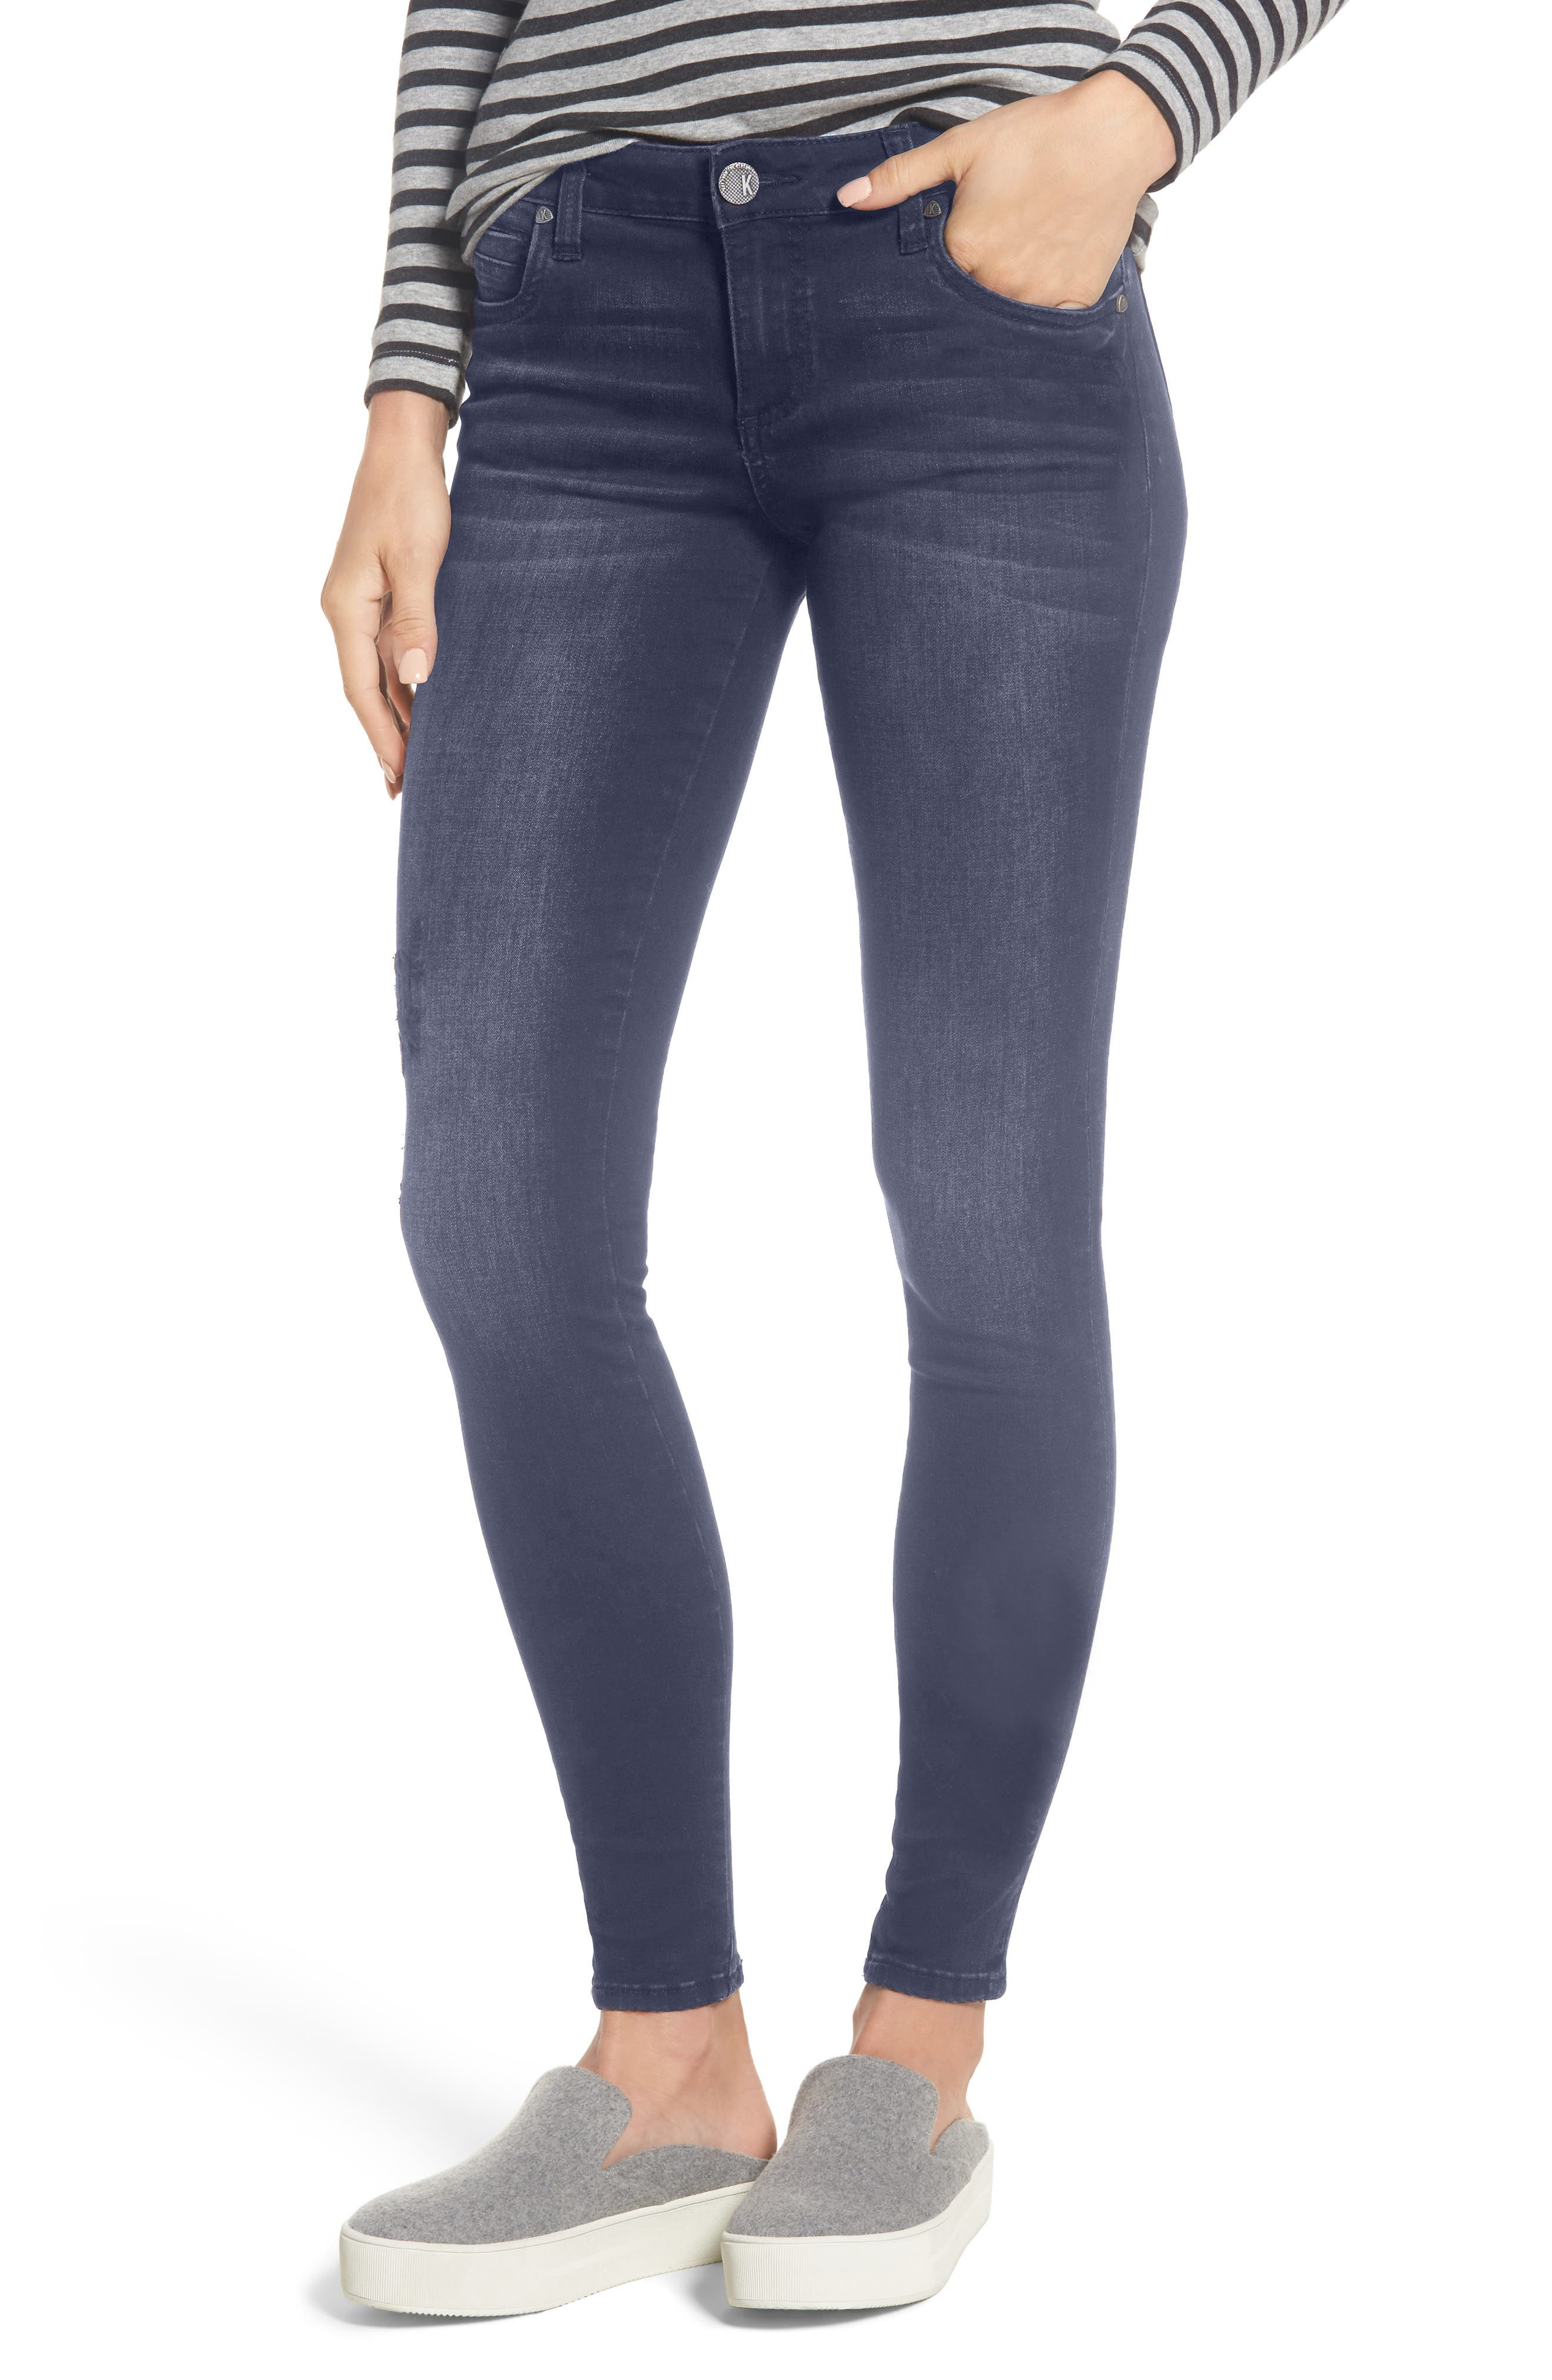 Mia Embroidered Skinny Jeans,                         Main,                         color, Quintessential